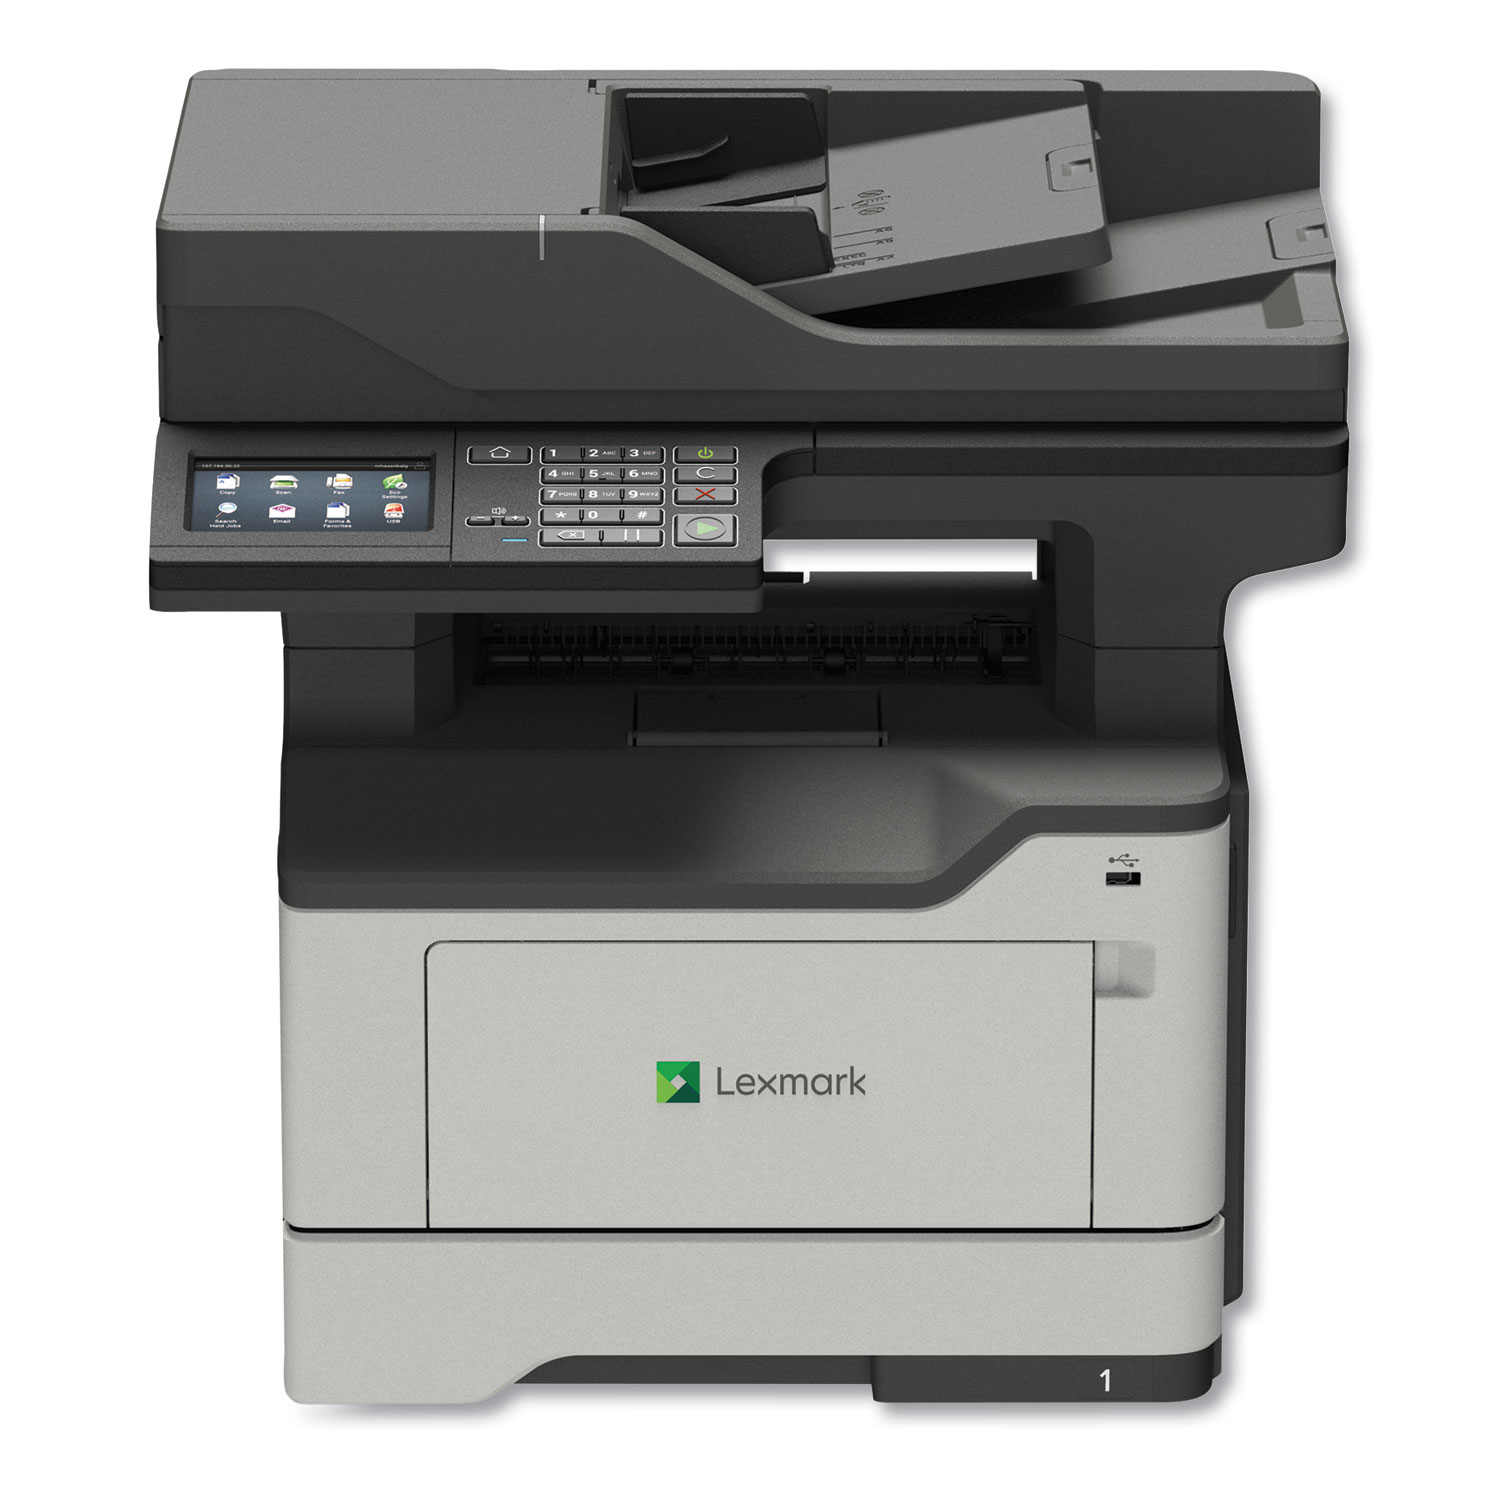 MX521de Printer, Copy/Print/Scan